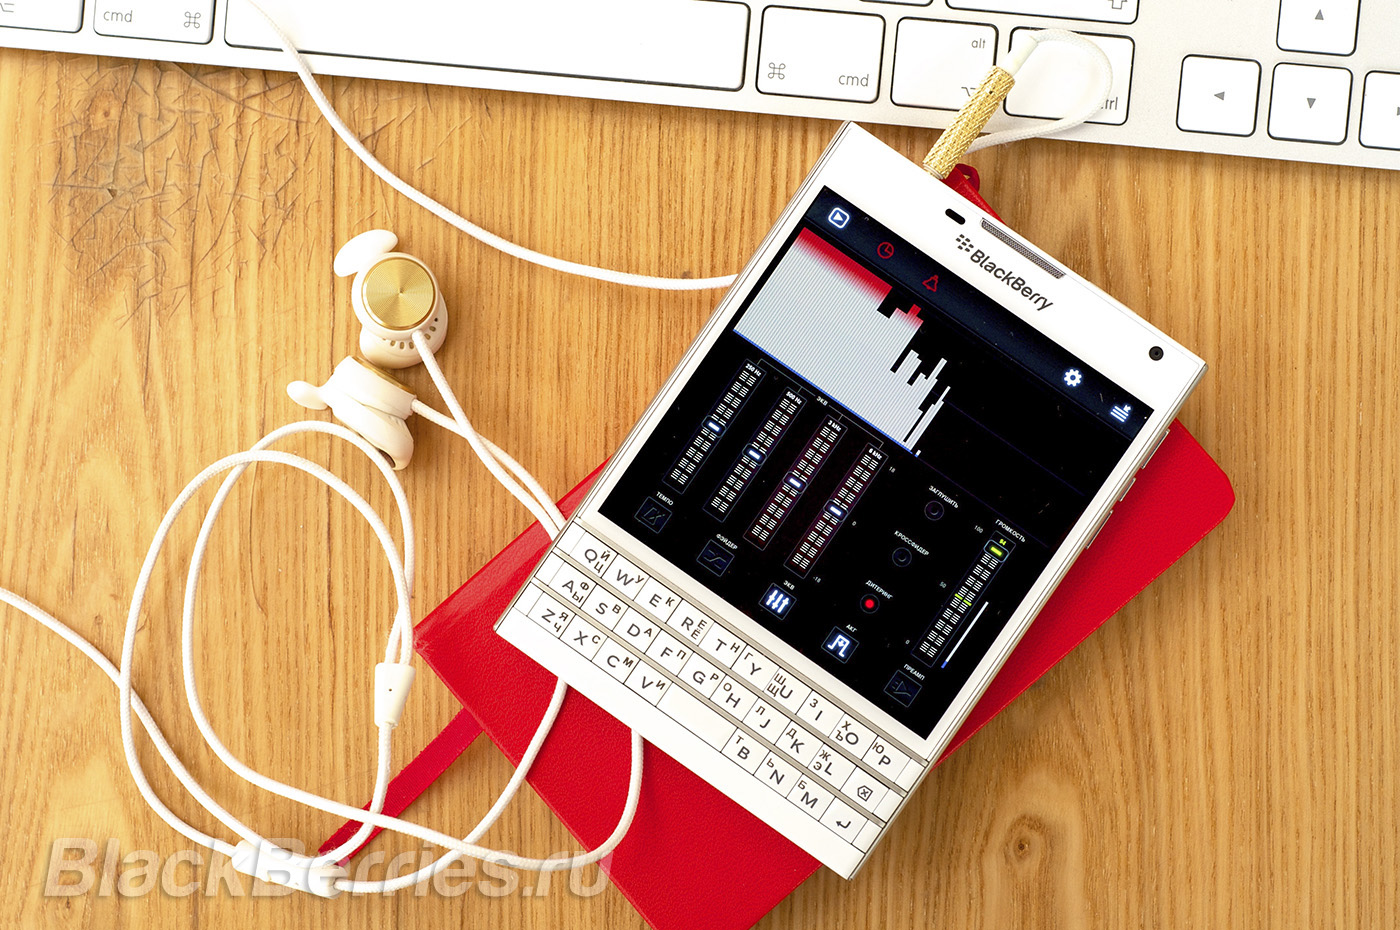 BlackBerry-Passport-Music-Apps-16